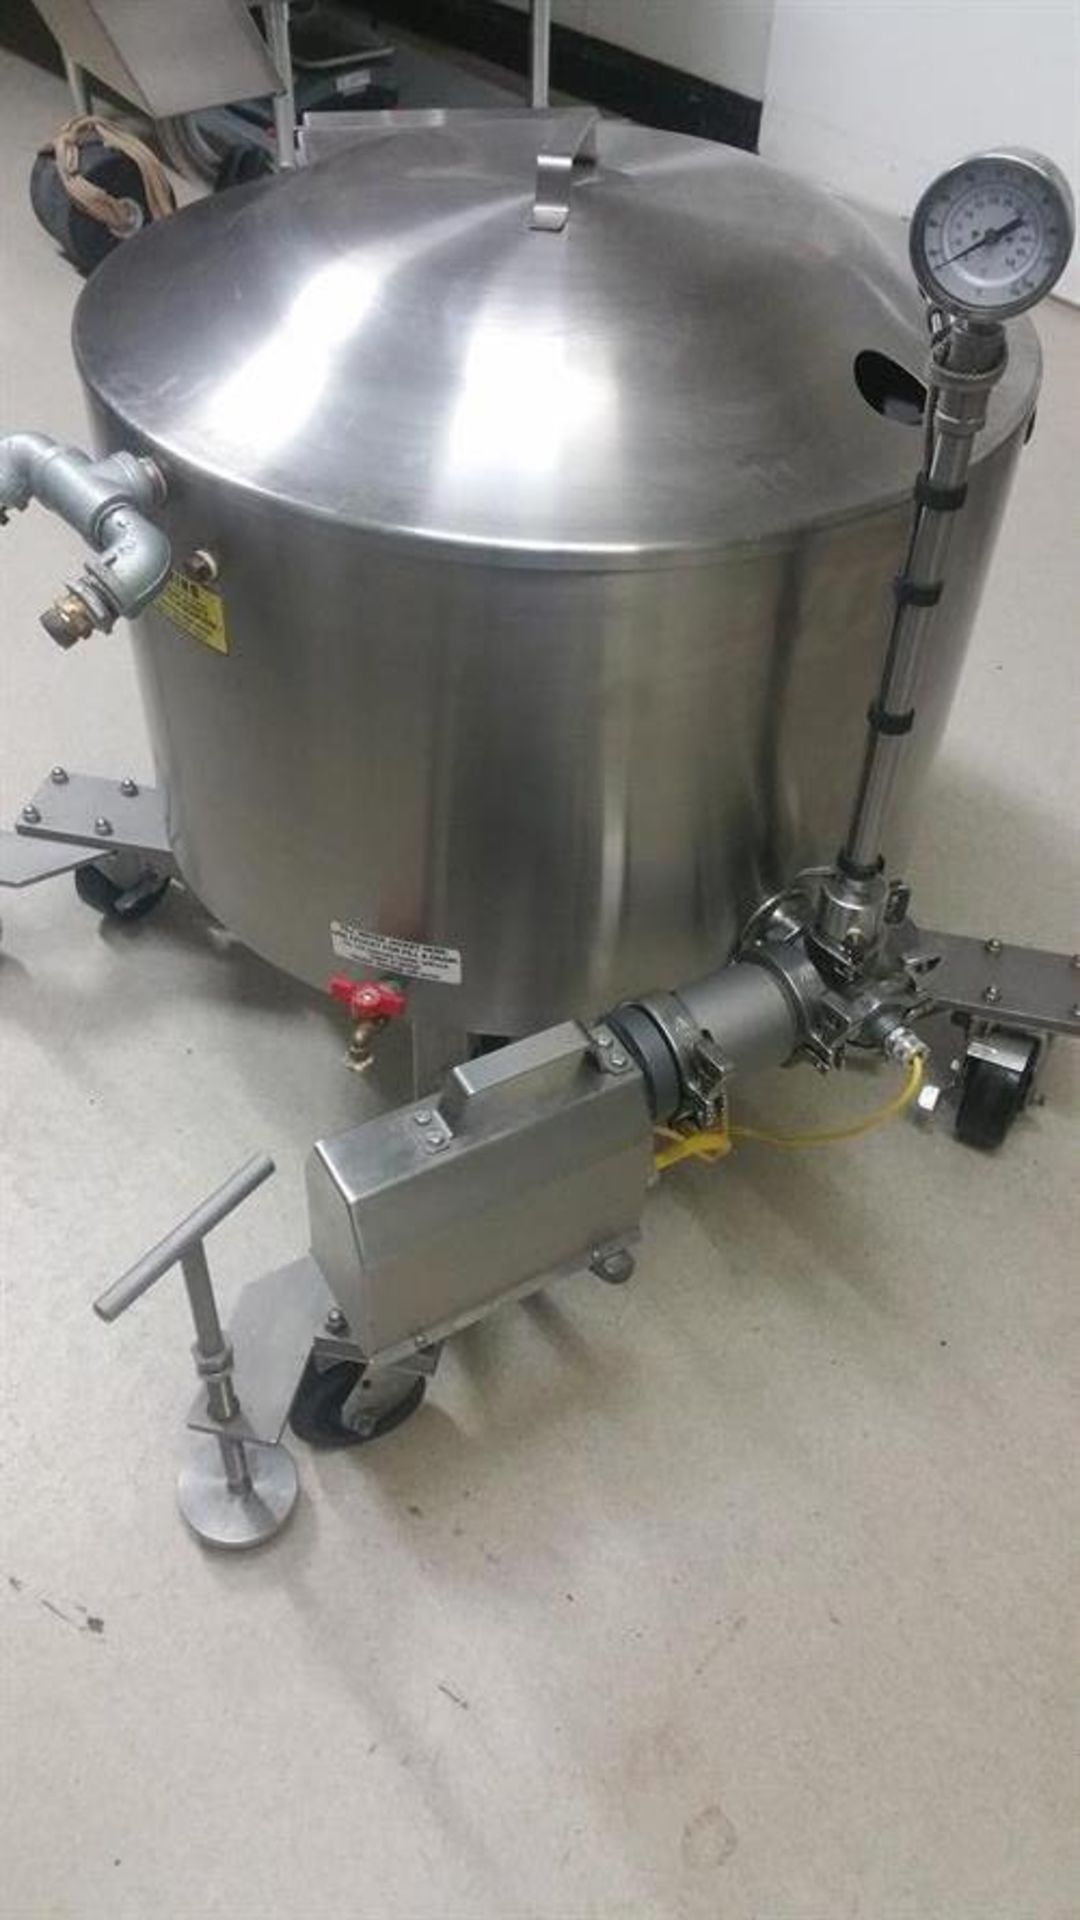 Savage 300-lb Stainless Steel Auto tempering Melter with Metering Pump - All stainless steel - Water - Image 2 of 12